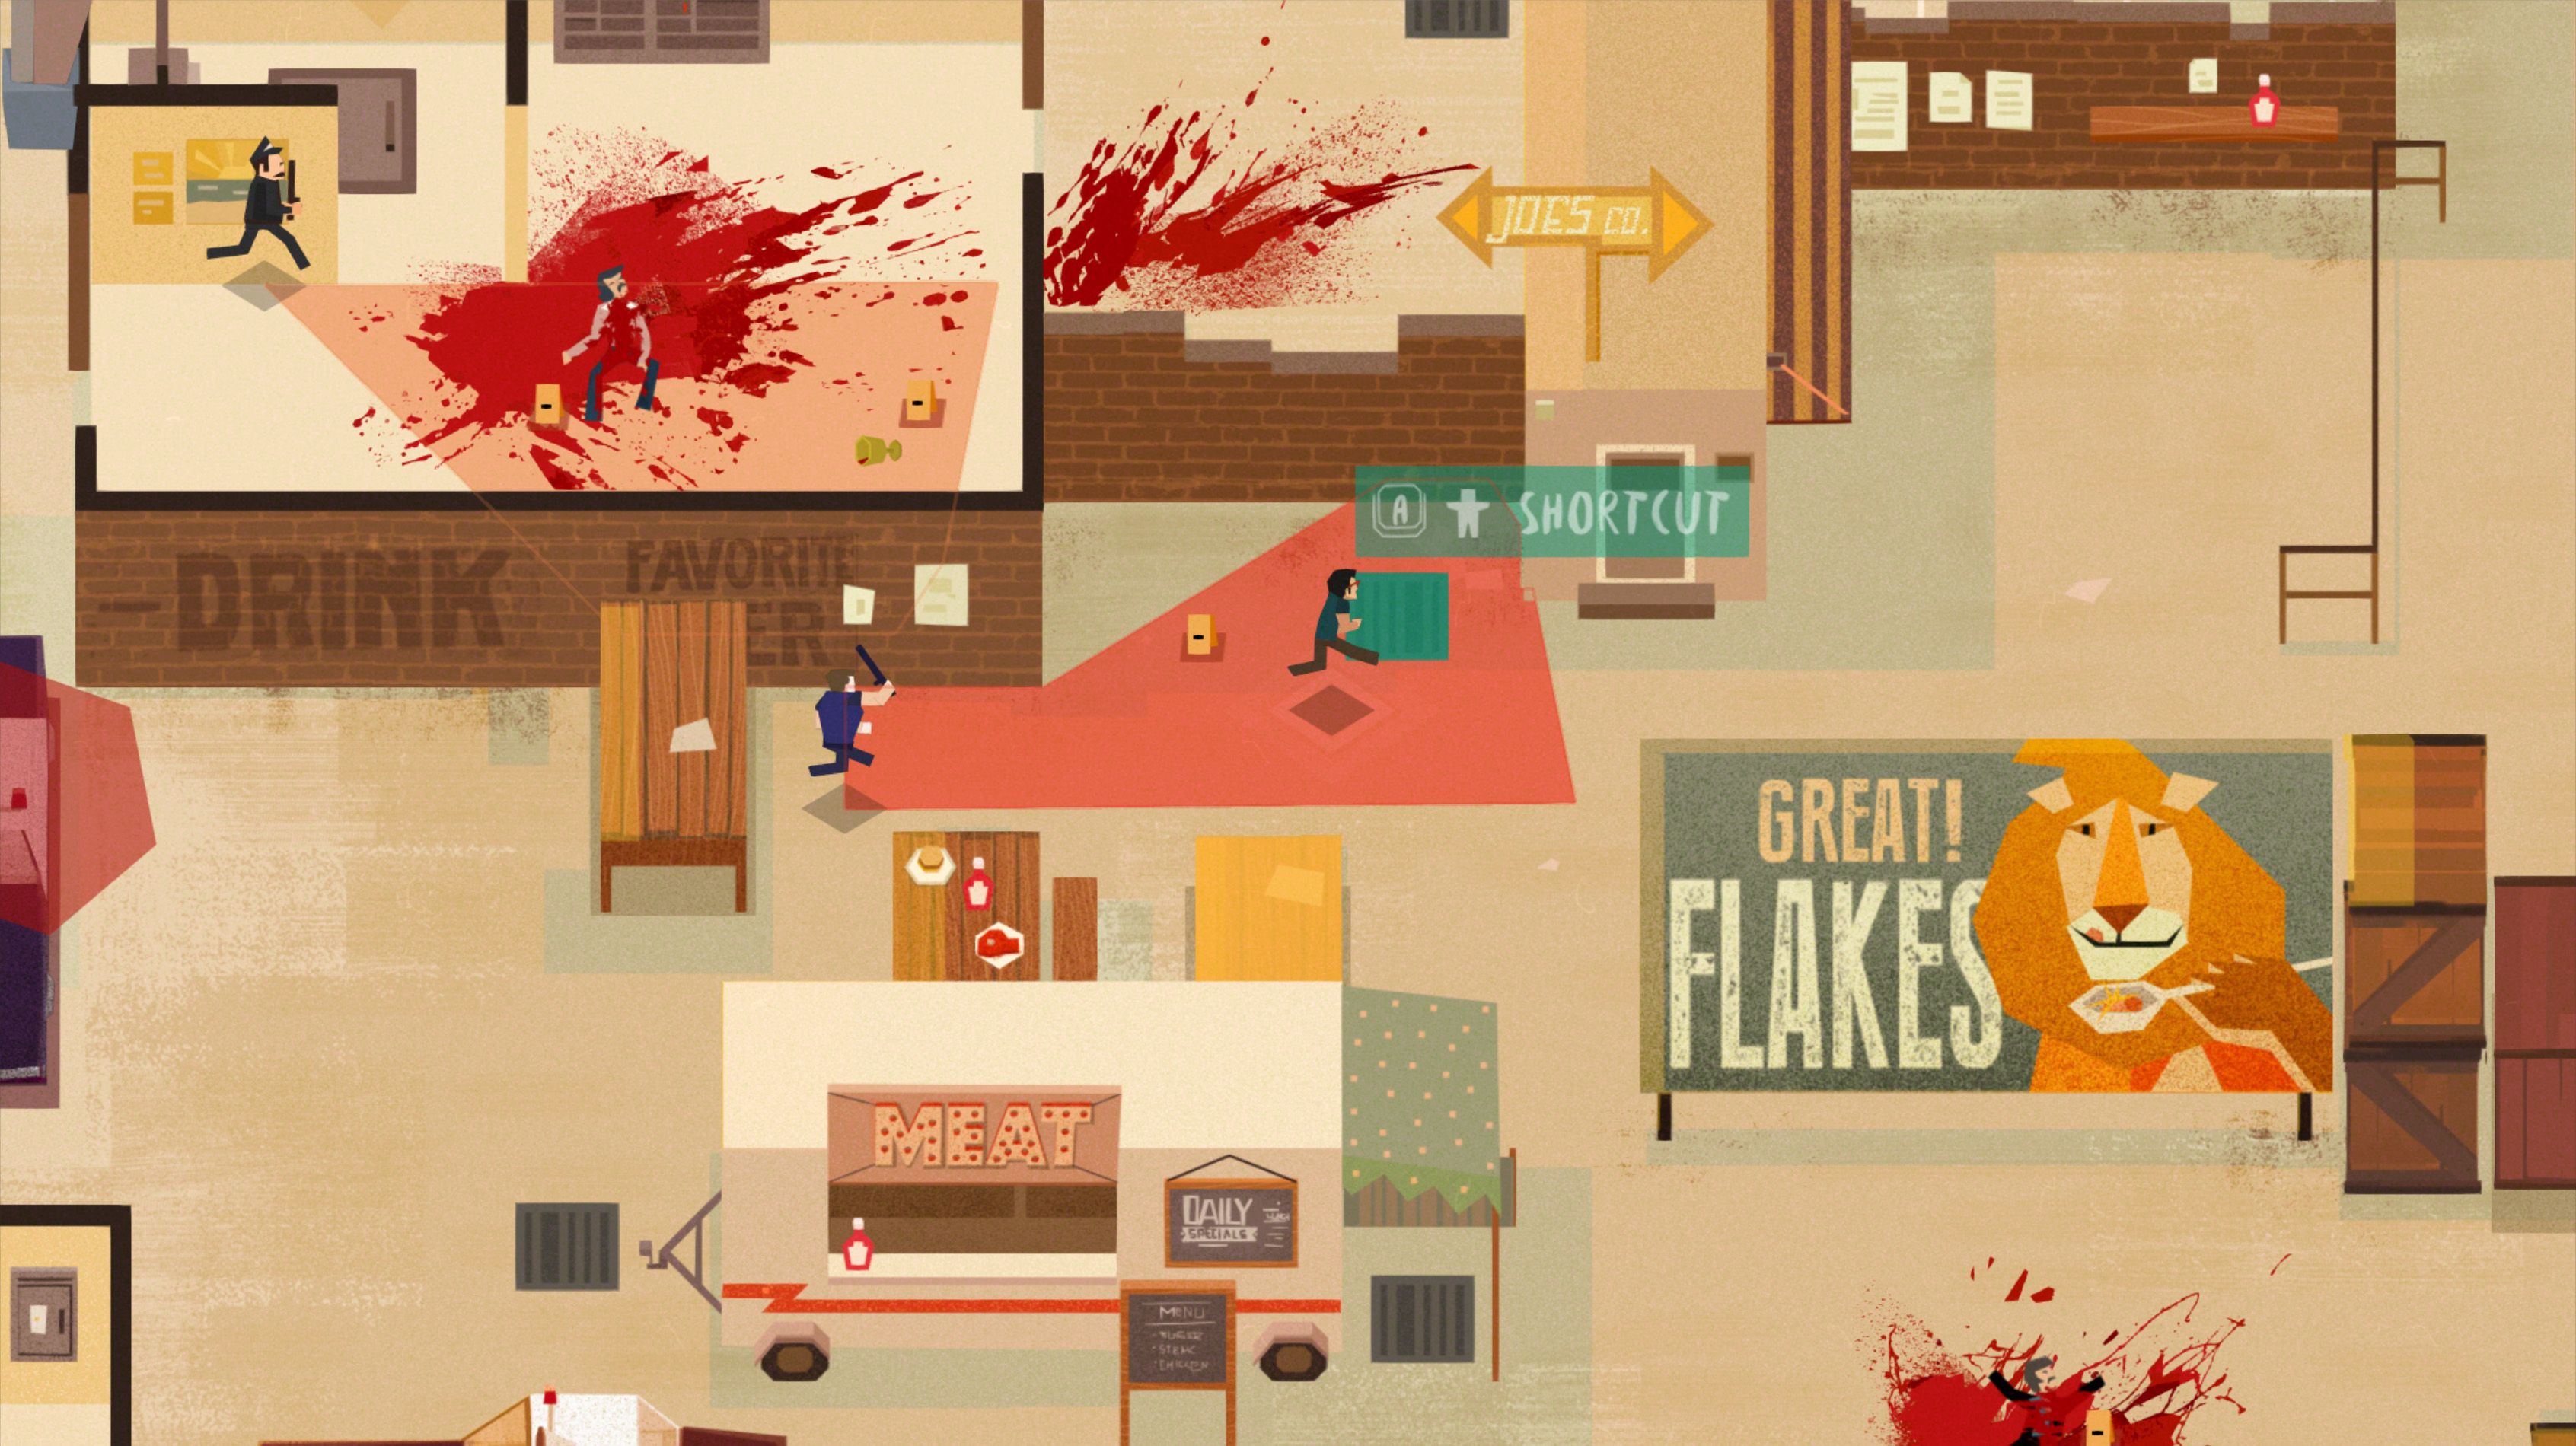 One of the screenshots from our game Serial Cleaner